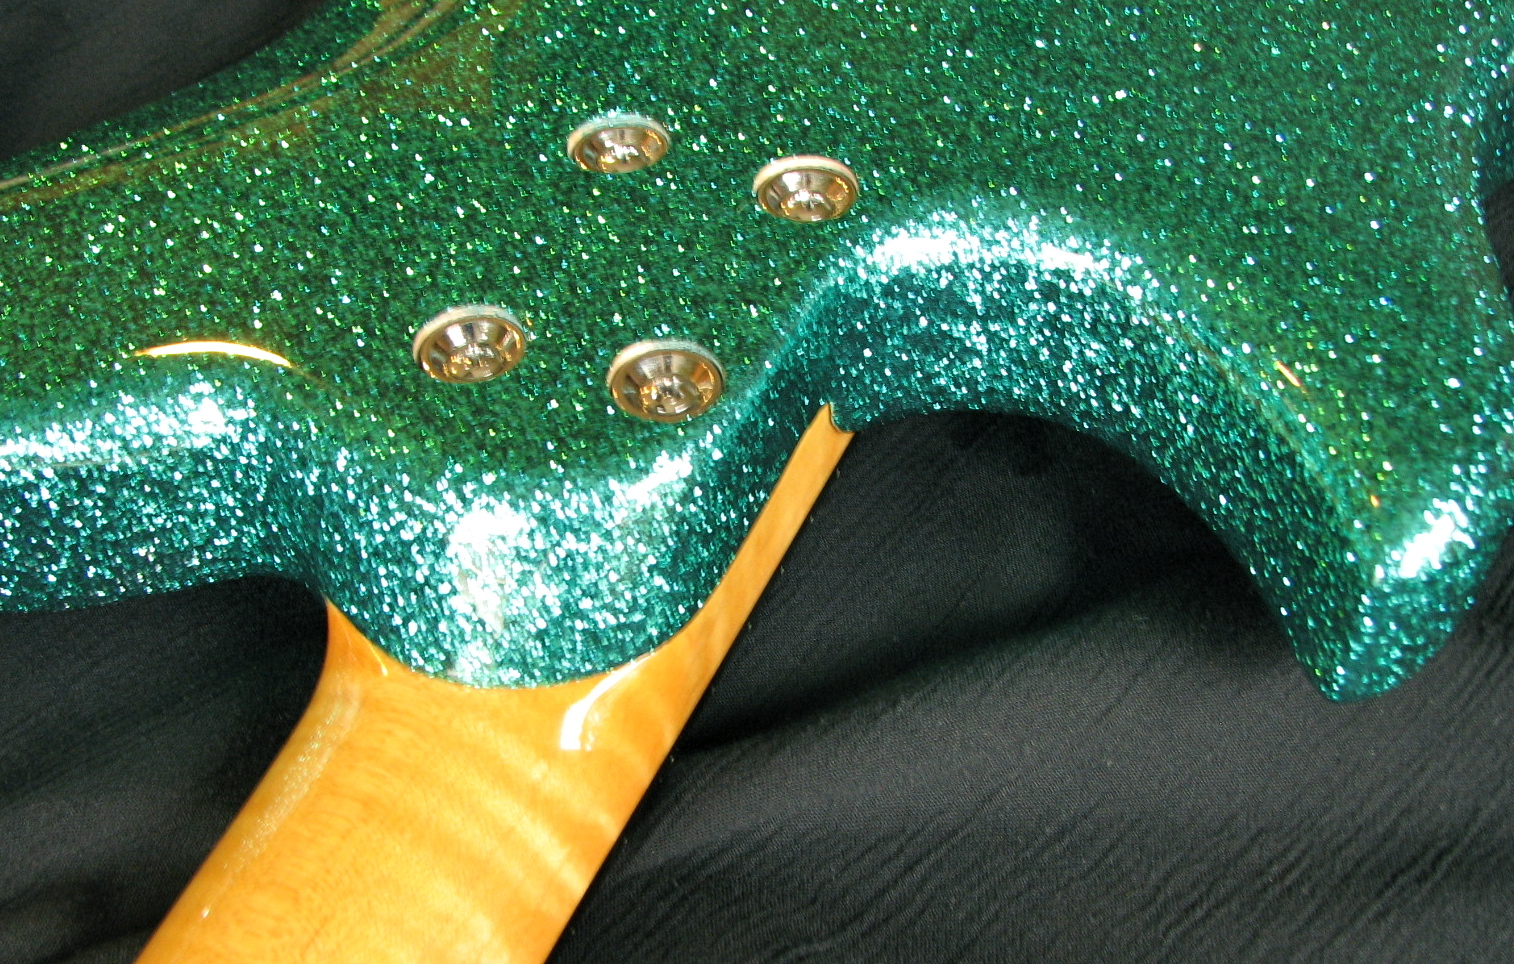 The super-tight neck joint & fully rounded heel make the Speedsters play like butter with sustain like a set-neck guitar